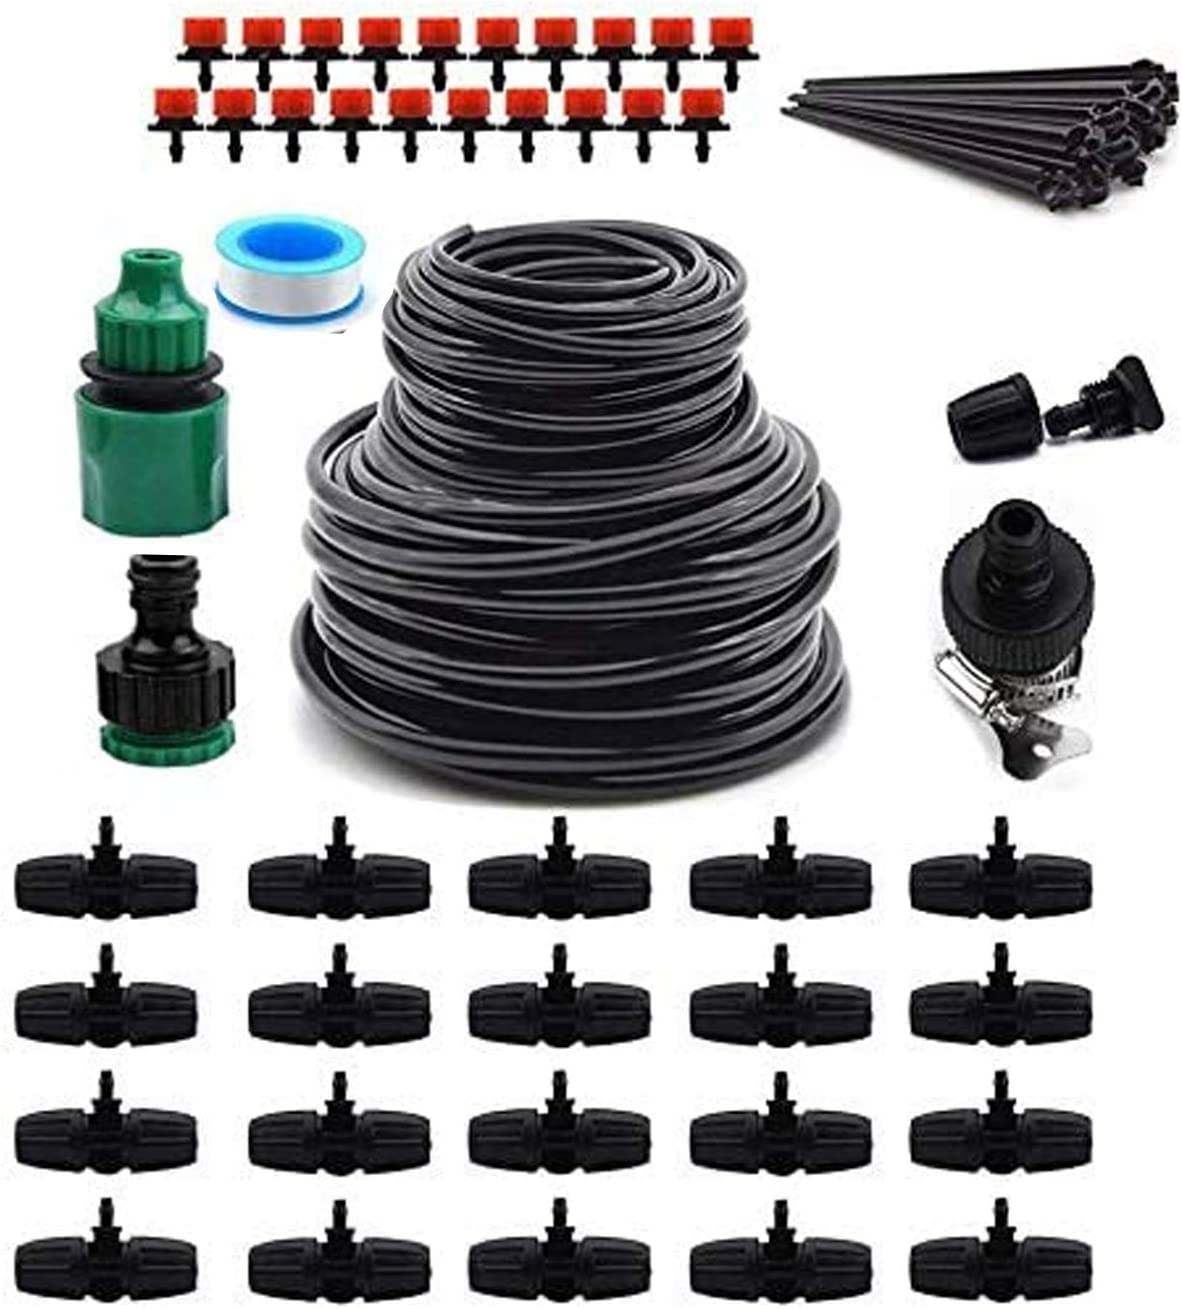 """Upgrade Garden Irrigation System,100ft Irrigation System 1/2"""" & 1/4"""" Blank Distribution Tubing Watering Drip Kit/Irrigation Kits Automatic Mist Irrigation Equipment Set for Garden,Flower Bed,Lawn"""